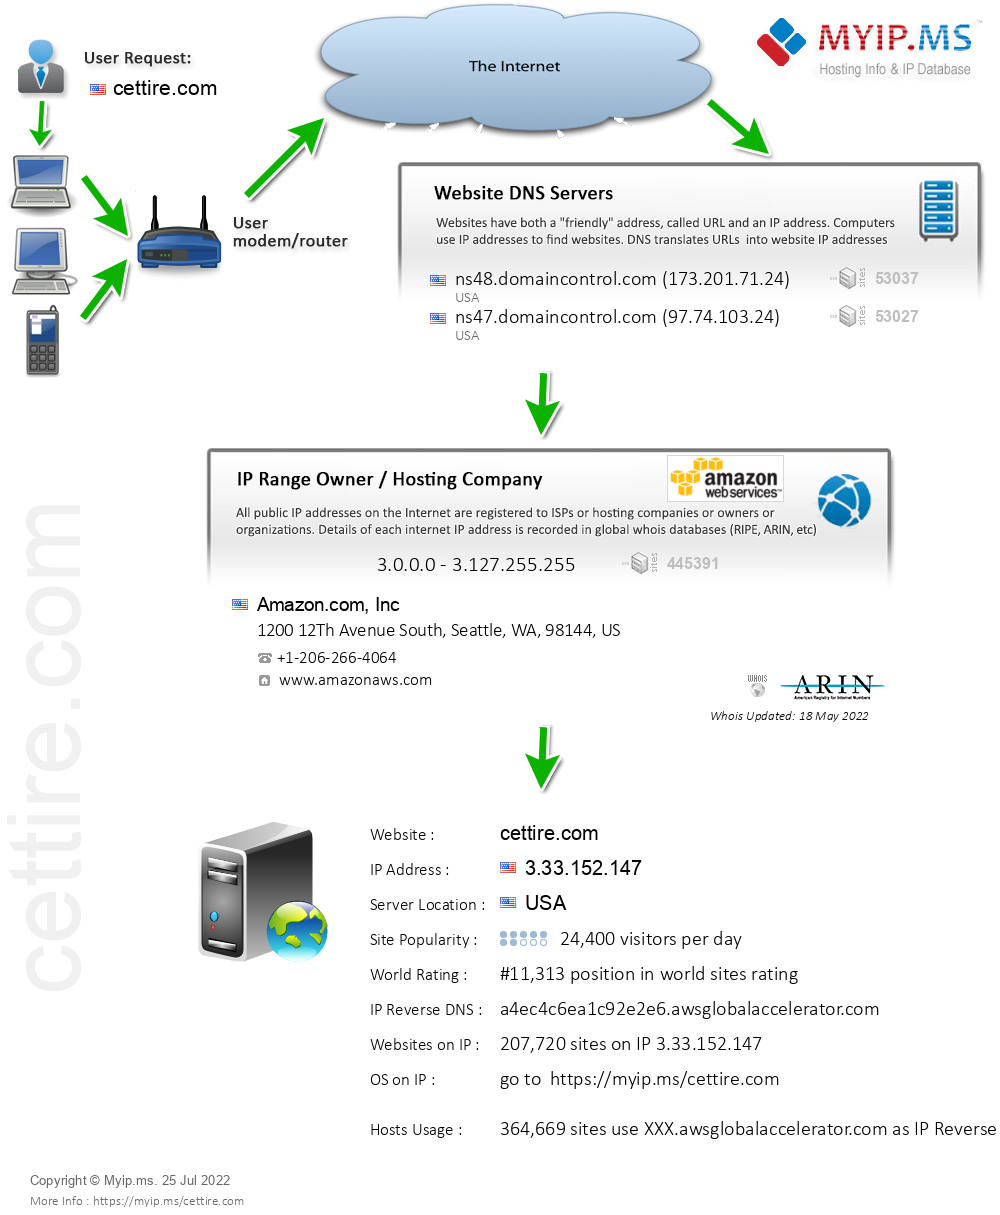 Cettire.com - Website Hosting Visual IP Diagram